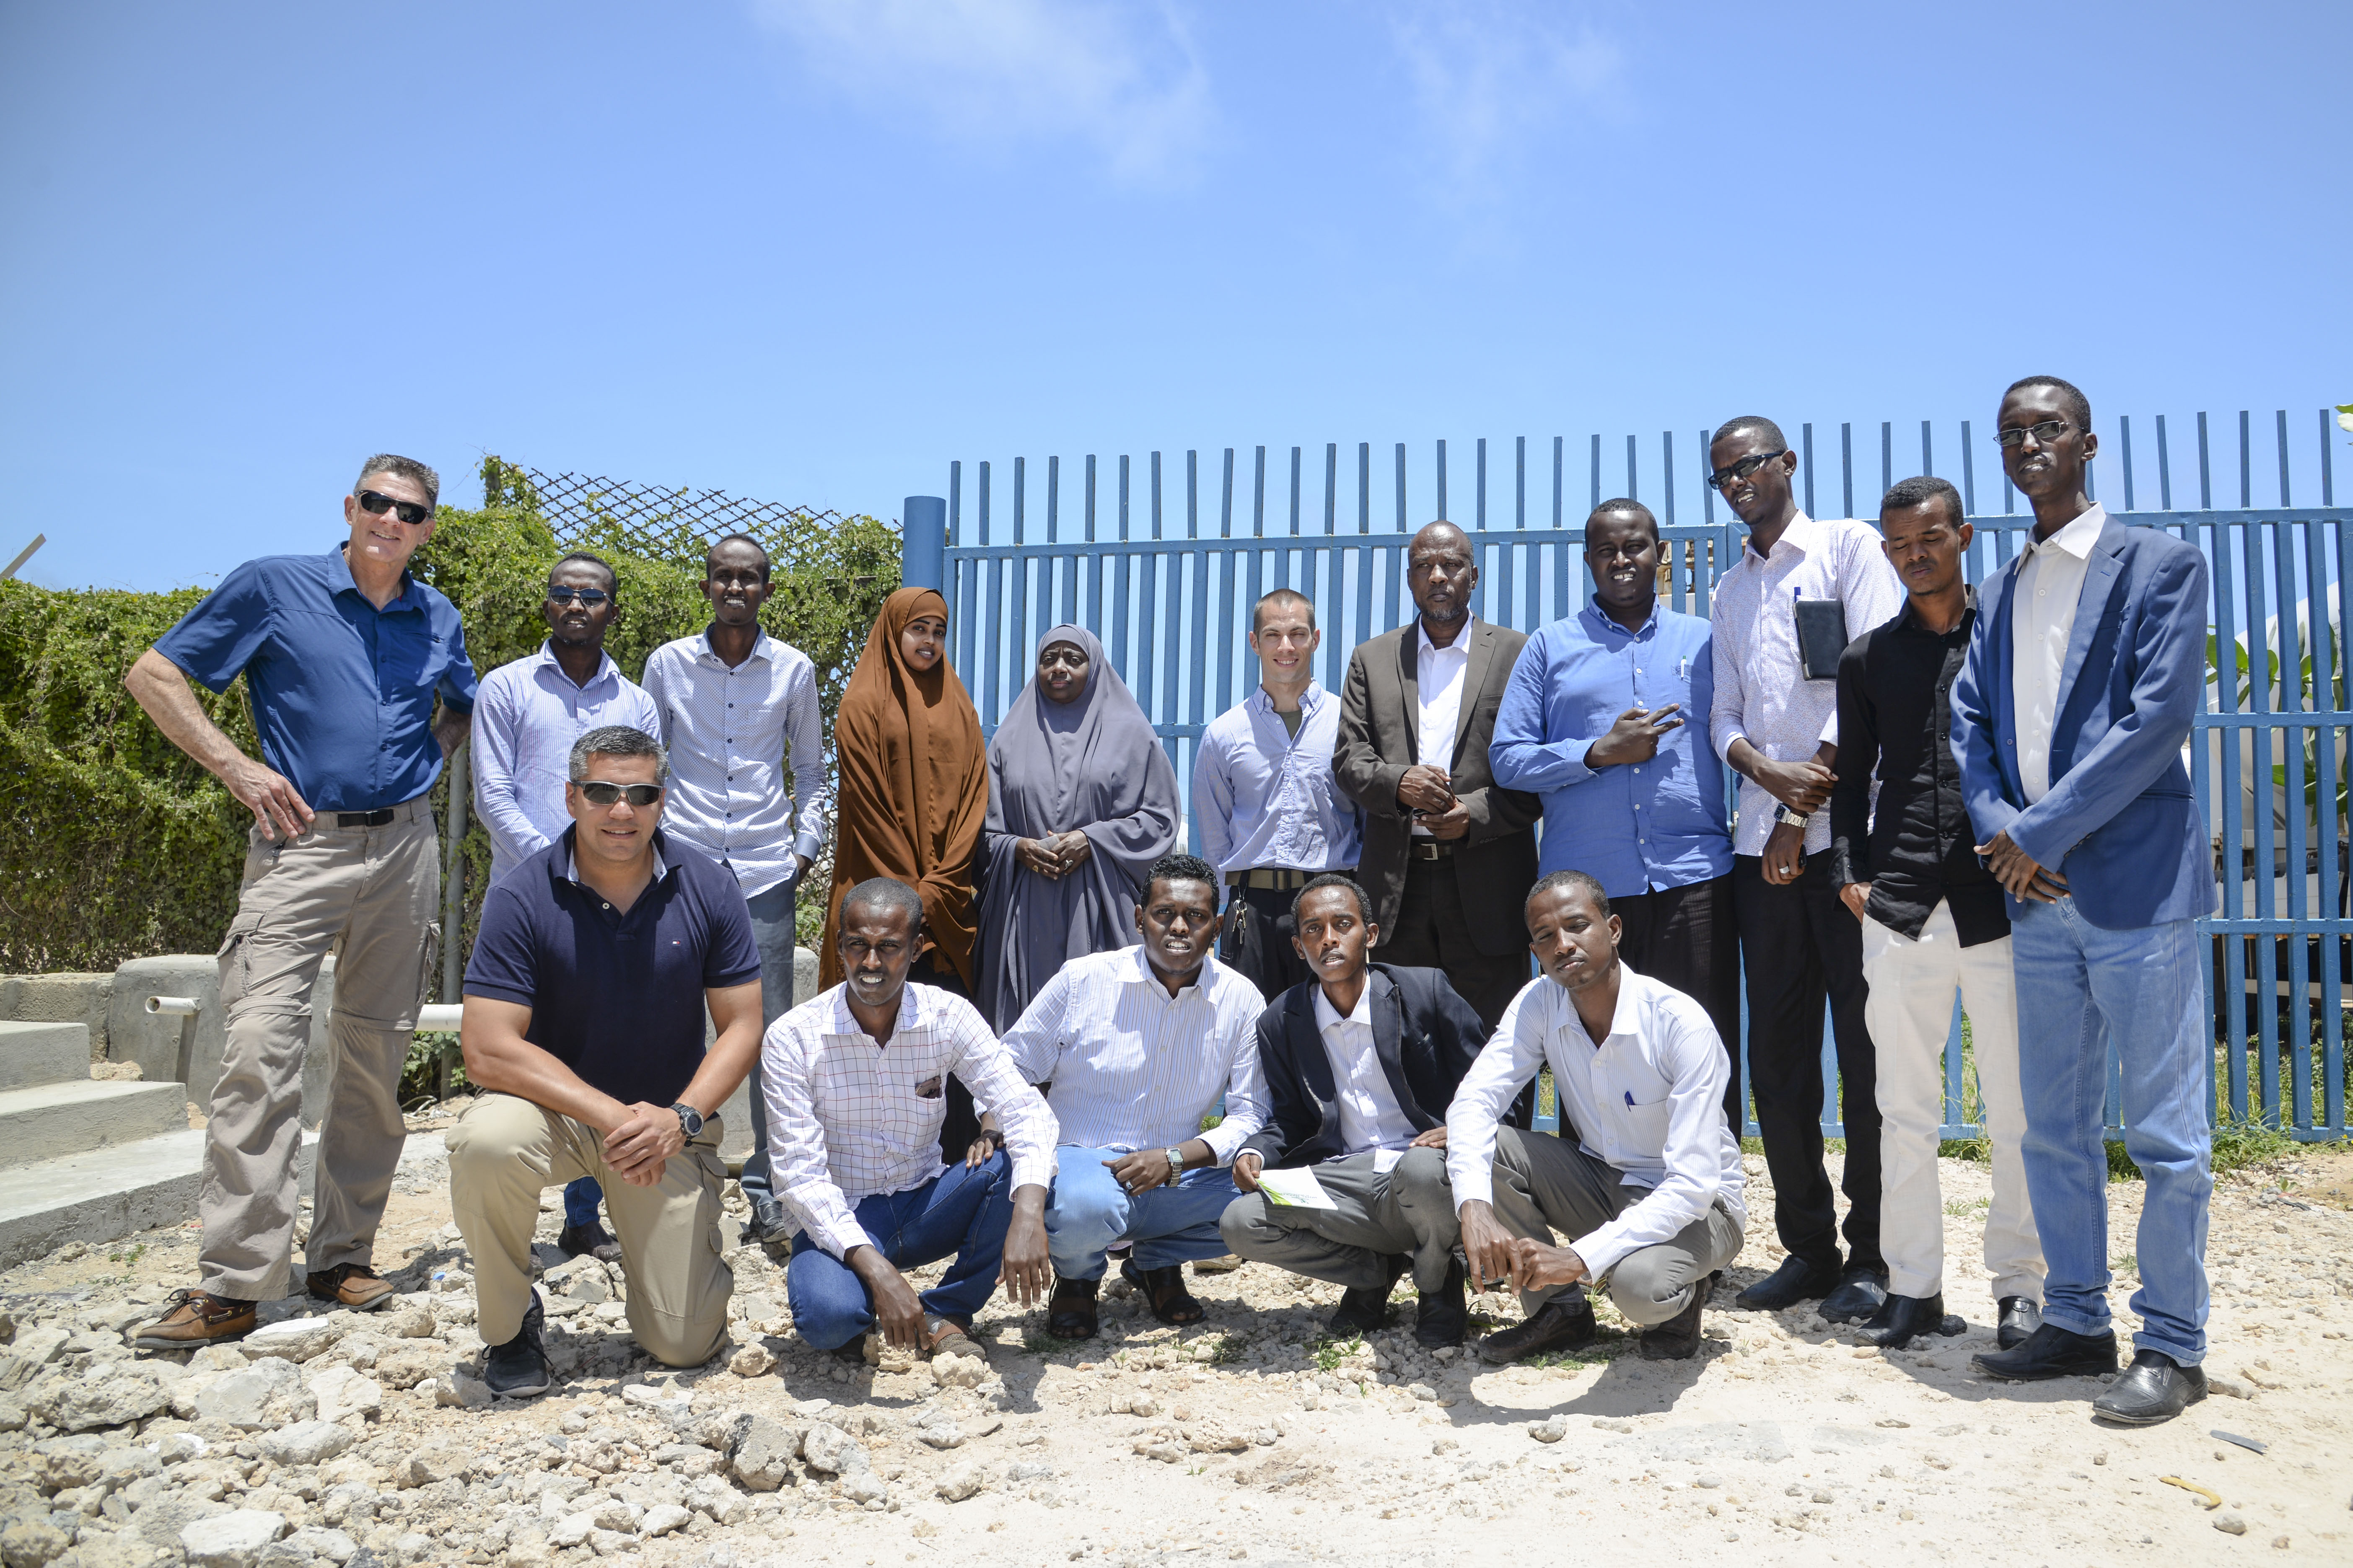 Doctors, attendees and facilitators of the Continued Medical Education conference pose for a photo in Mogadishu, Somalia, Sept. 14, 2016. The conference brought nearly 20 medical students and general practitioners from various sectors of Somalia together to receive training various medical practices, specifically in the field of radiology and pediatrics. (U.S. Air Force photo by Staff Sgt. Benjamin Raughton)